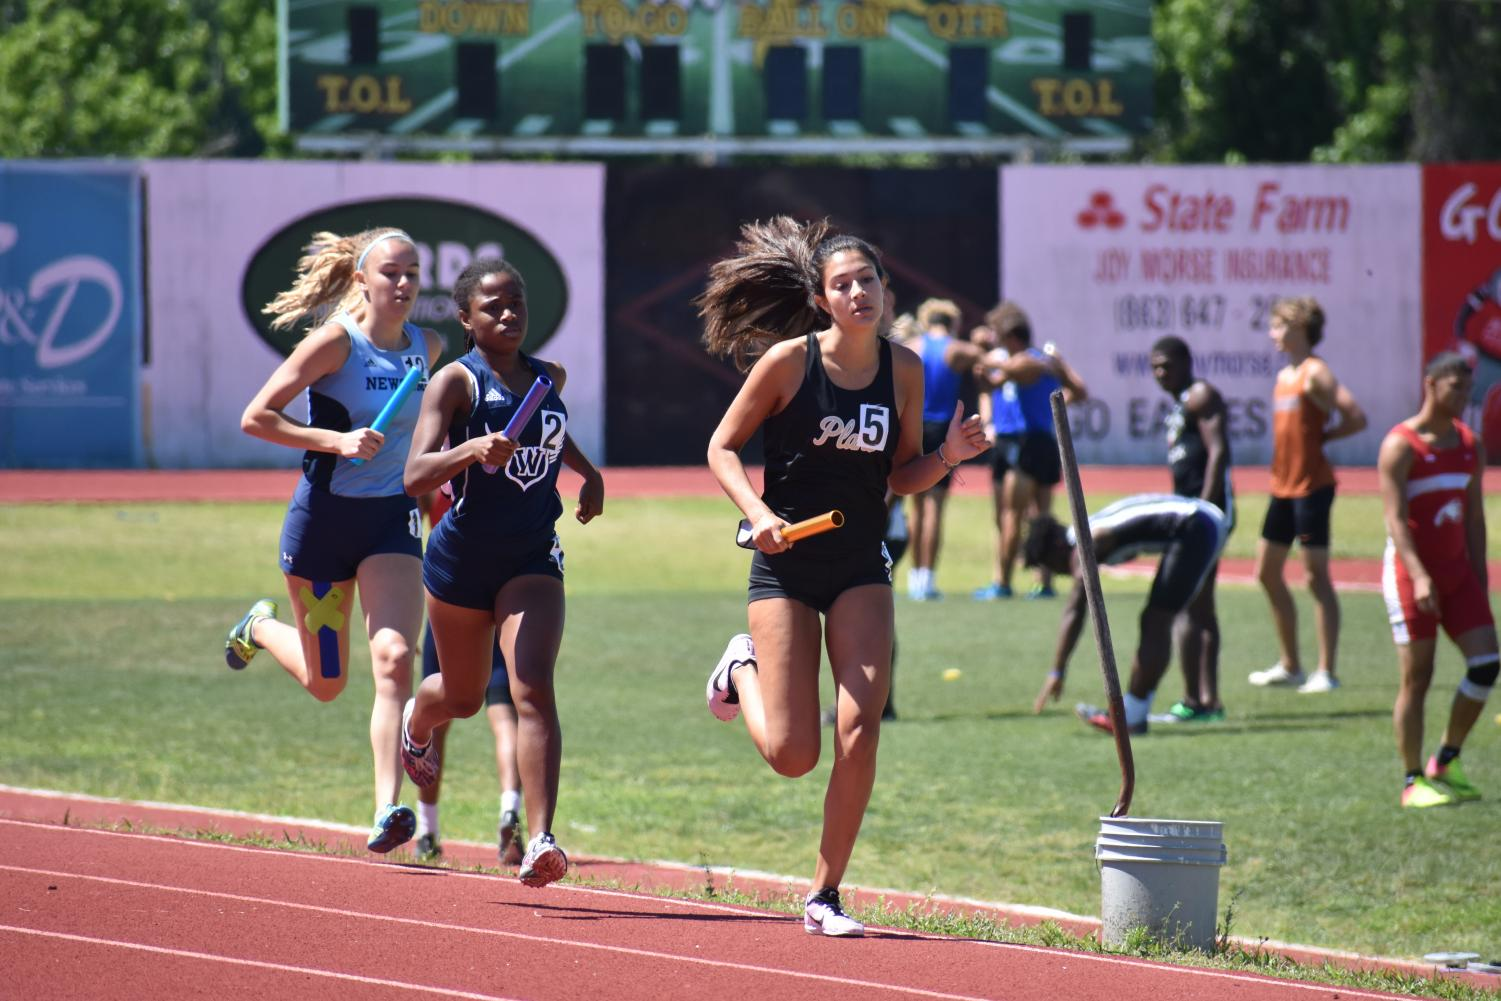 Creating+a+gap+from+her+opponents%2C+freshman+Arlie+Rubin+approaches+the+last+200+meters+of+her+race+April+27+at+George+Jenkins+High+School.+The+4x800+team+qualified+for+states+with+a+time+of+9%3A30.+